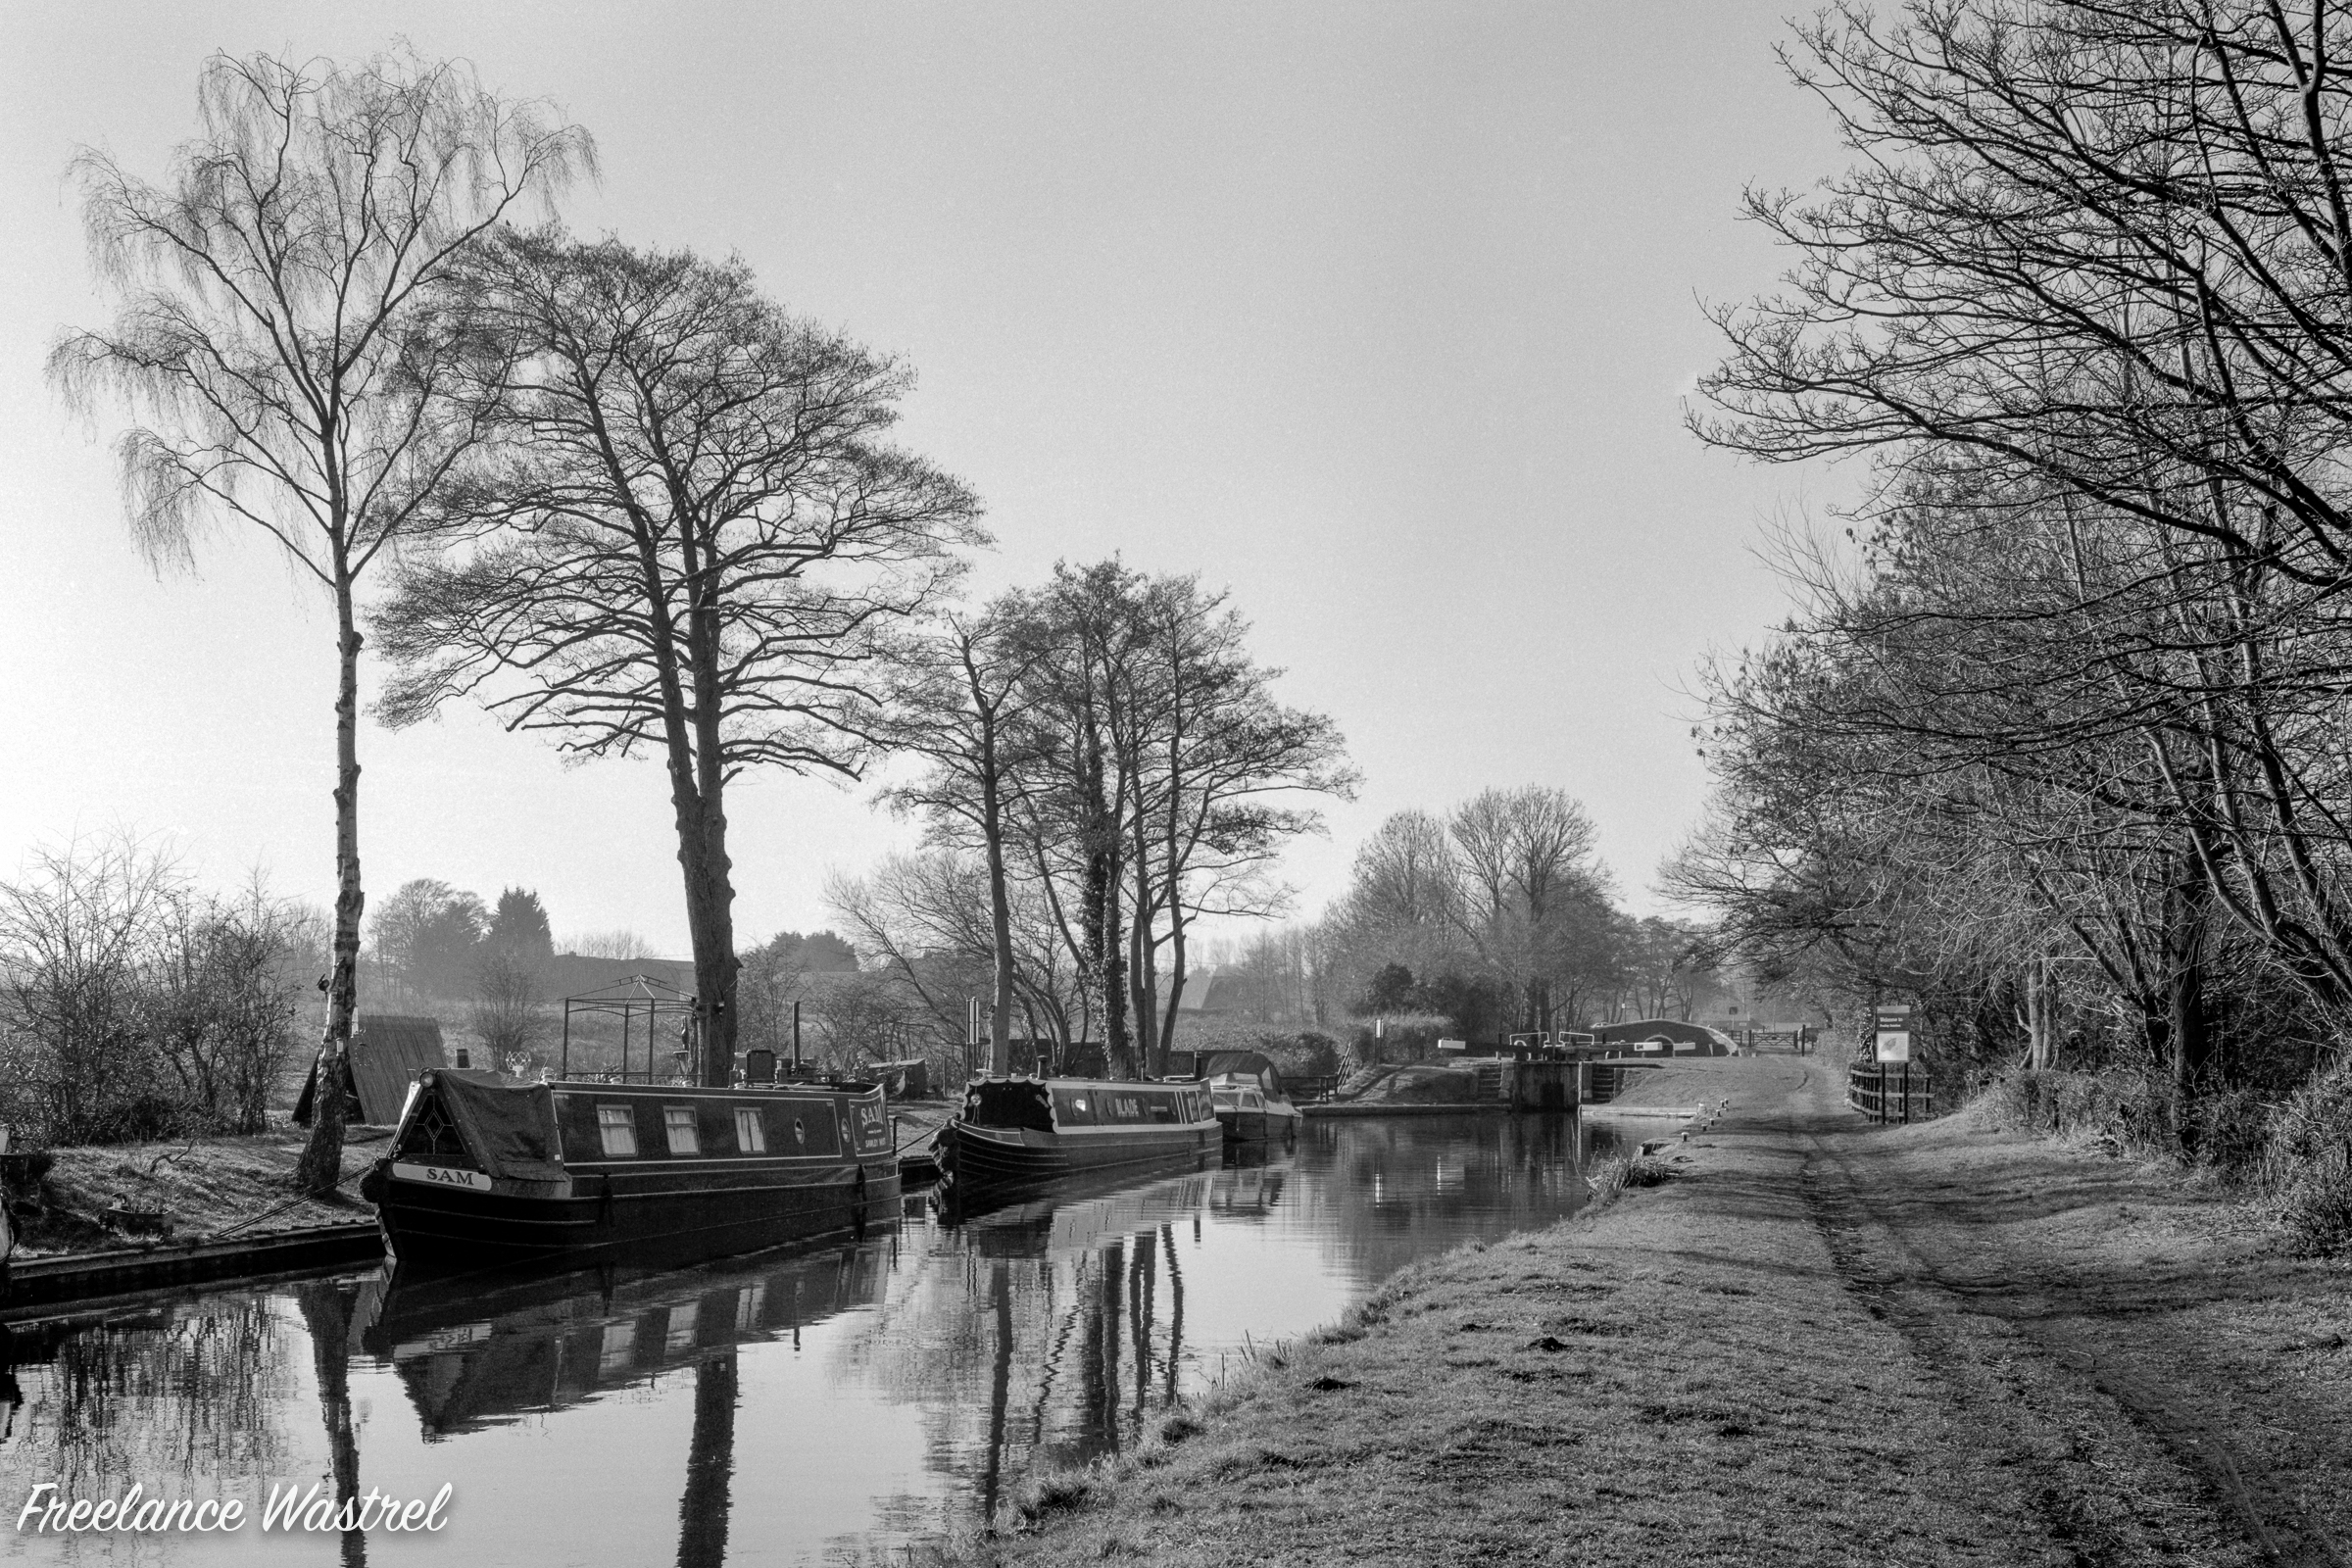 Narrow boats, Keepers Lock